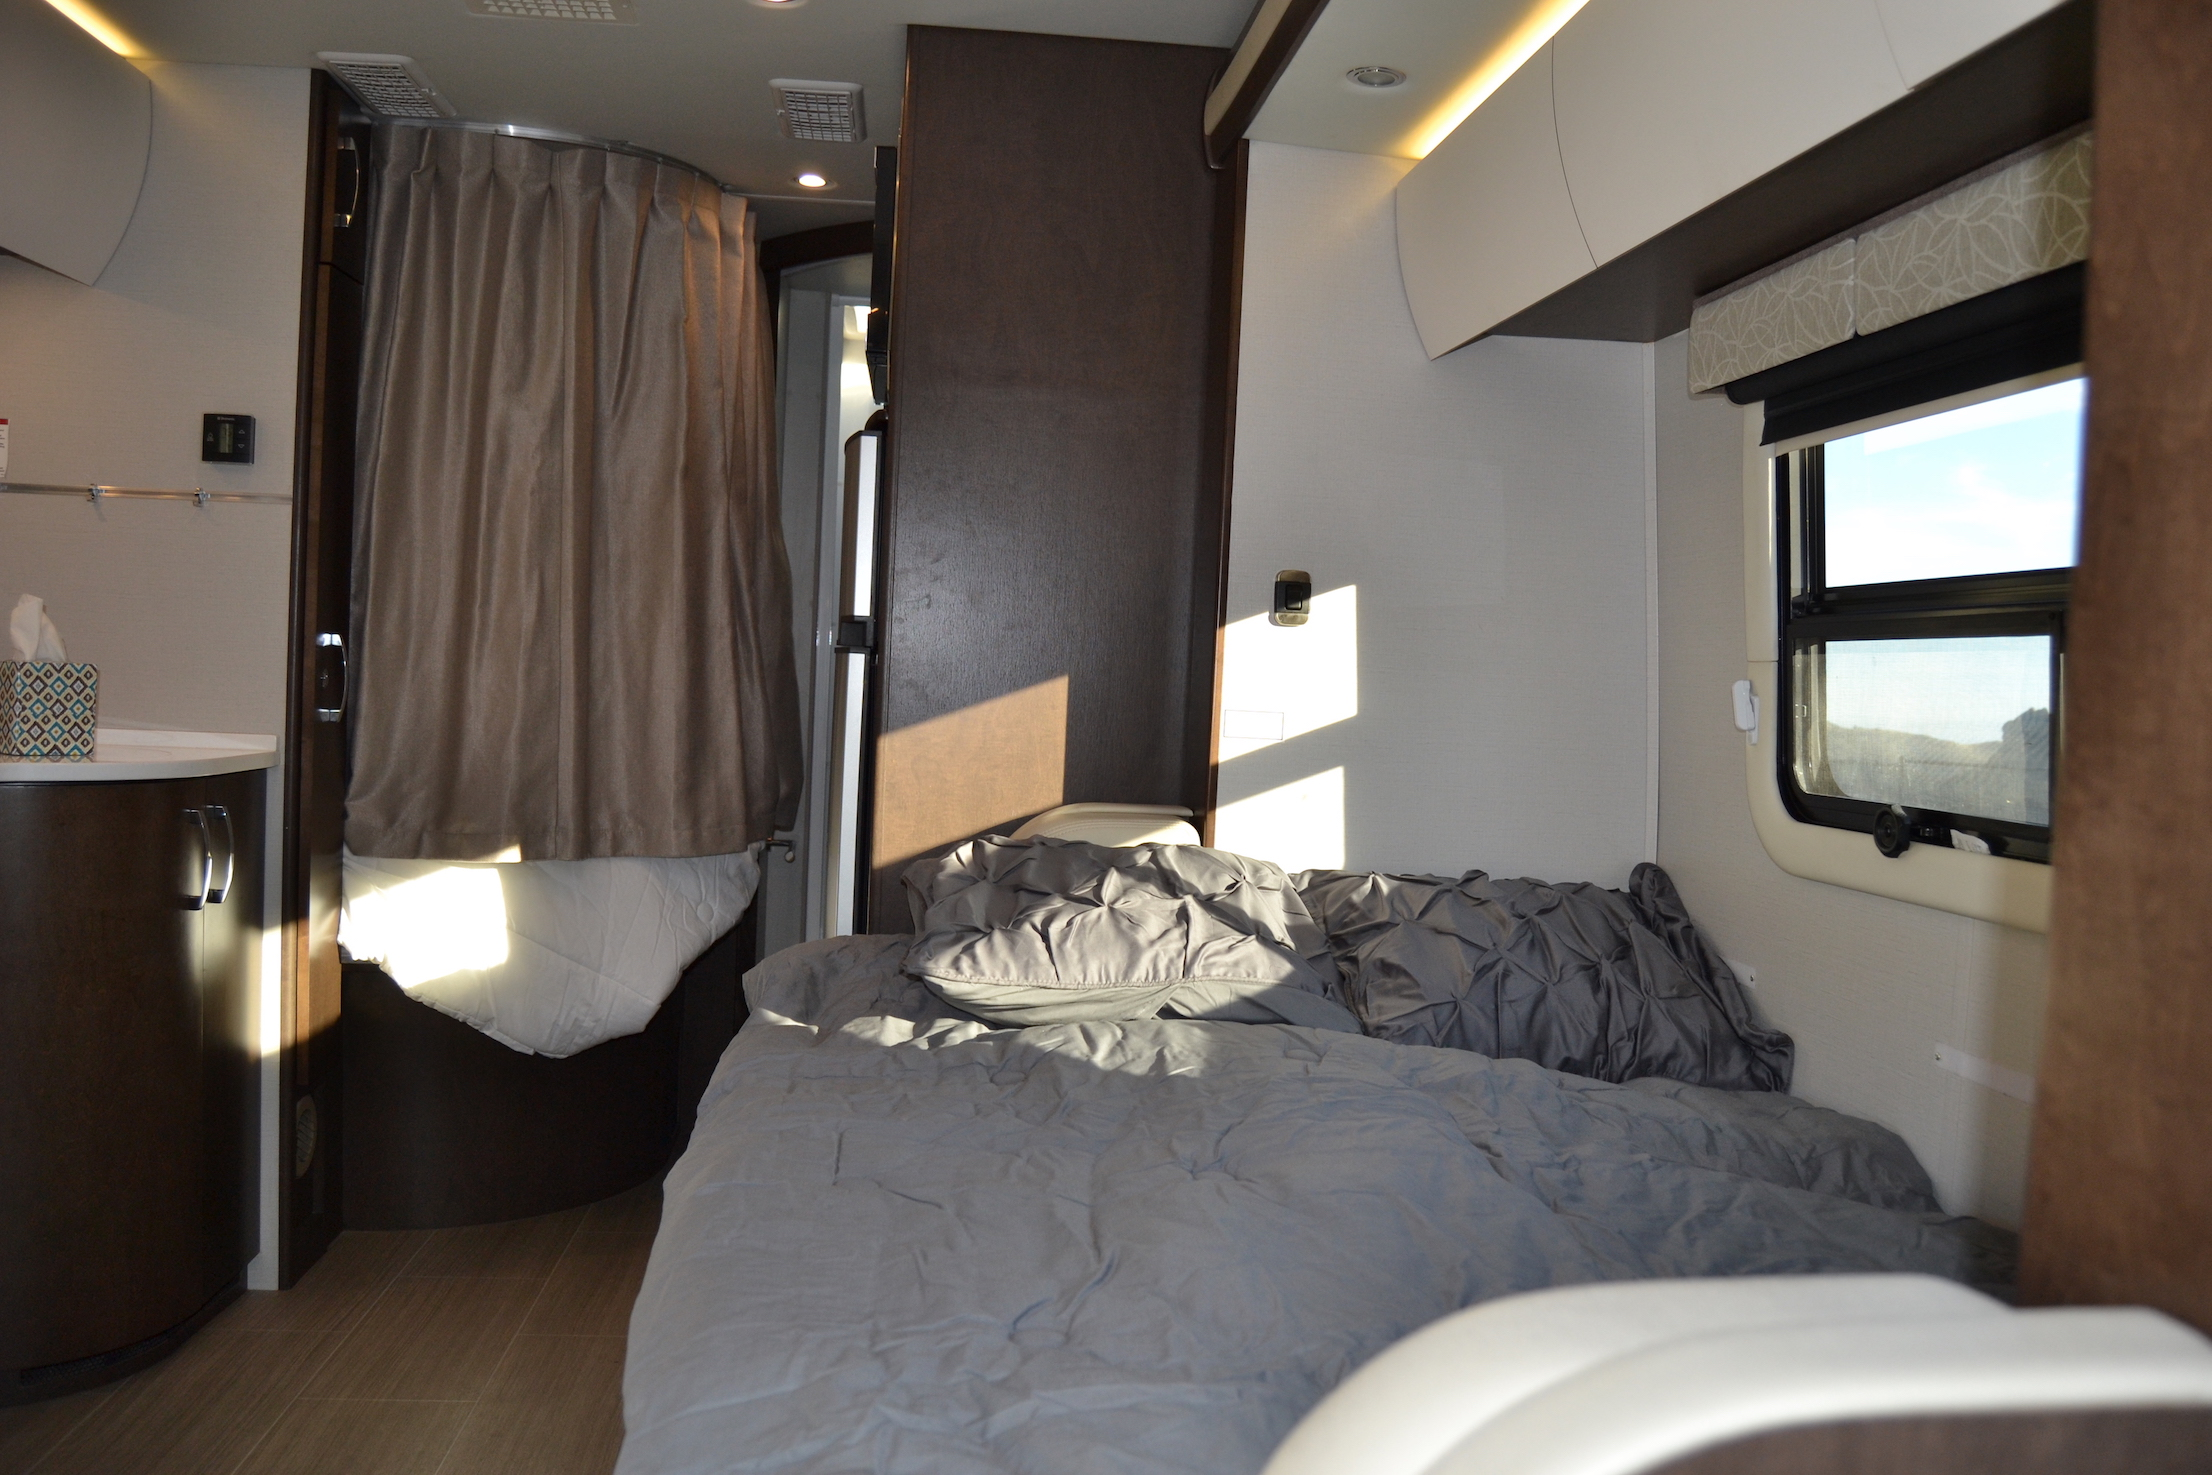 beds leisure unity RV Luxe RV